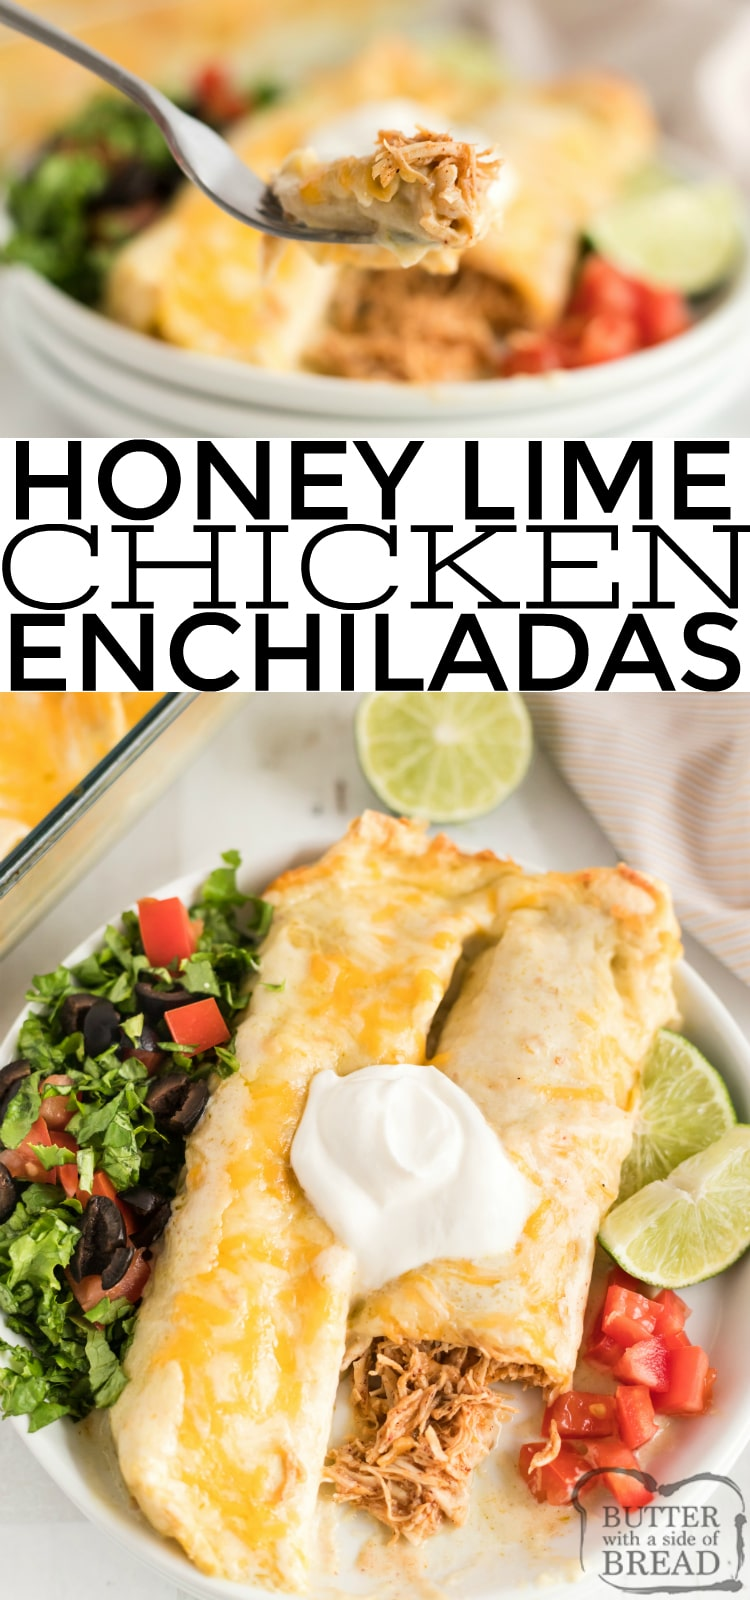 Honey Lime Chicken Enchiladas are made with a little bit of honey, a little bit of lime and a delicious creamy green sauce. This easy chicken enchilada recipe is so simple and the flavors are incredible!